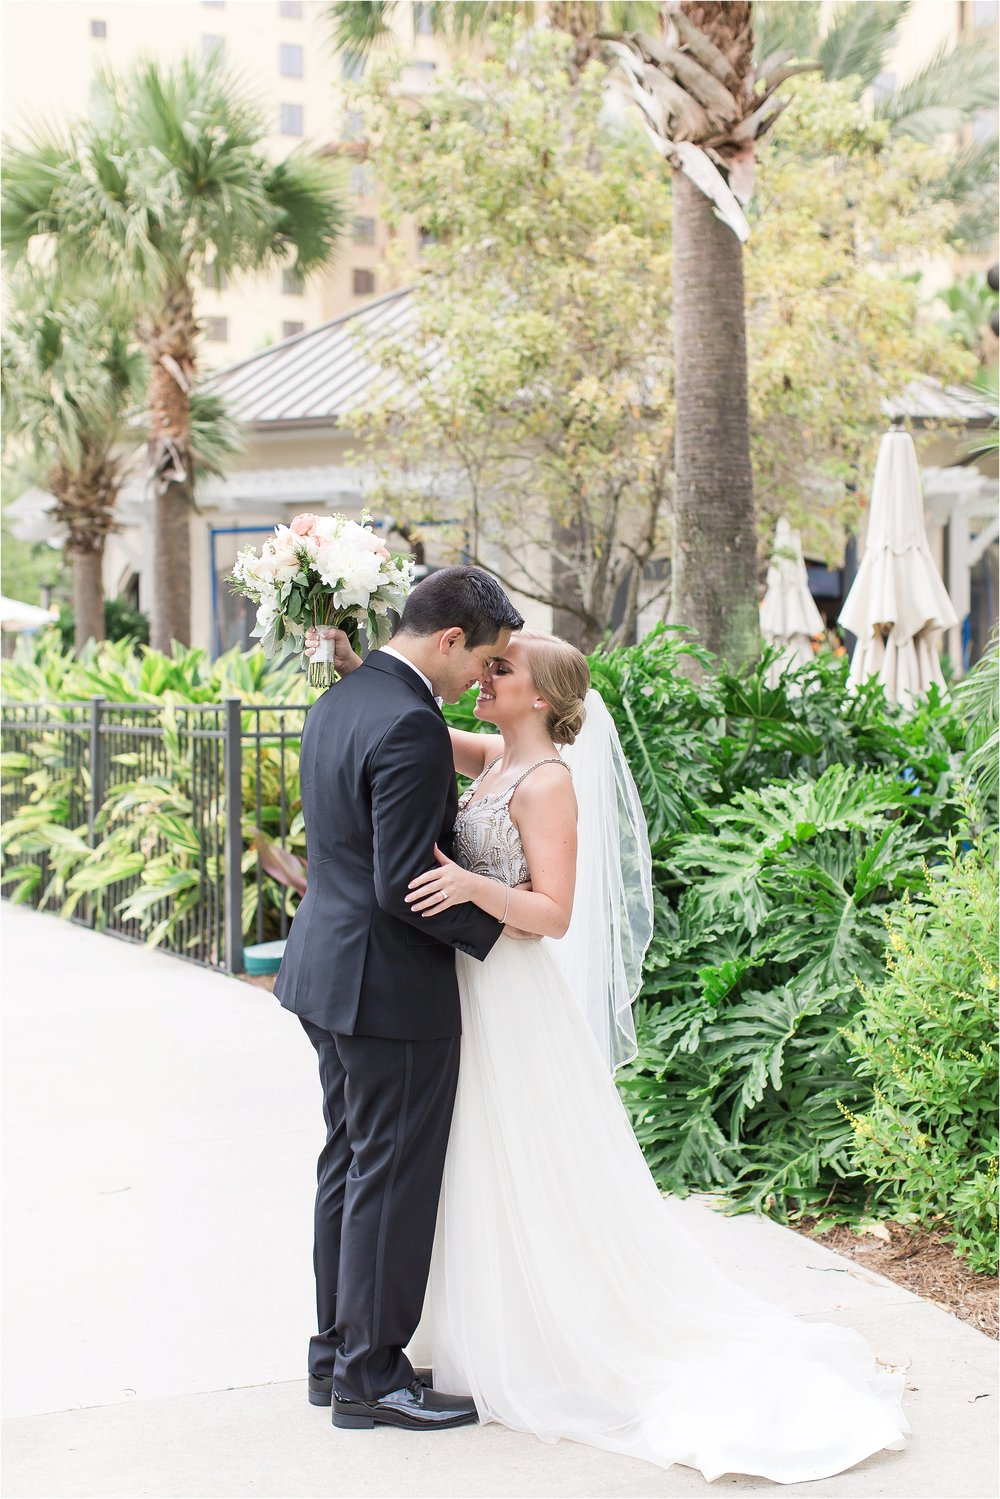 Bride and Groom at Spring time Wyndham Grand Resort at Bonnet Creek Wedding